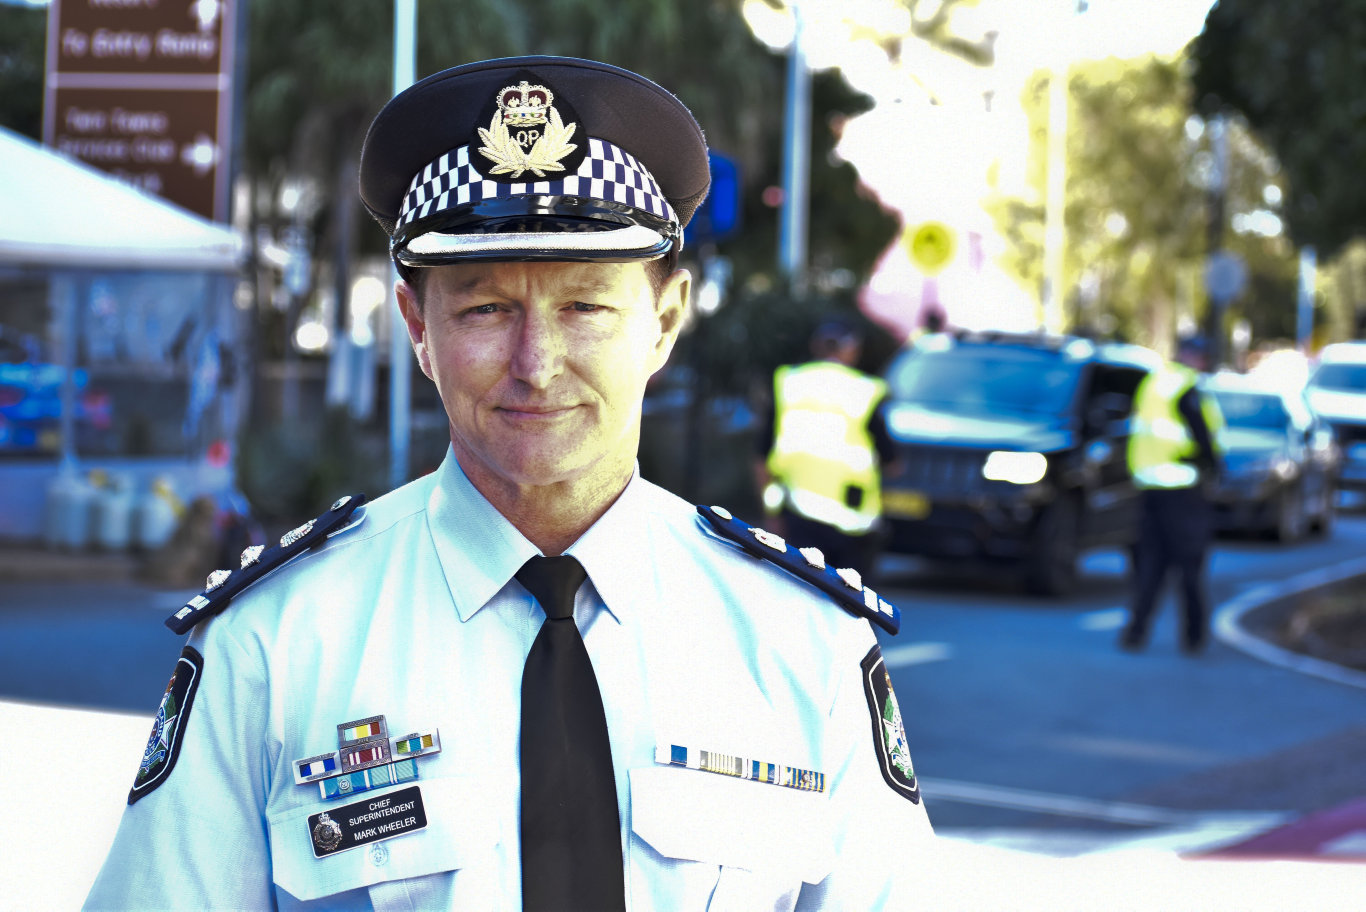 Queensland Police's Chief Superintendent Mark Wheeler at a press conference at the Griffith St, Coolangatta border checkpoint this morning. Photo: Jessica Lamb